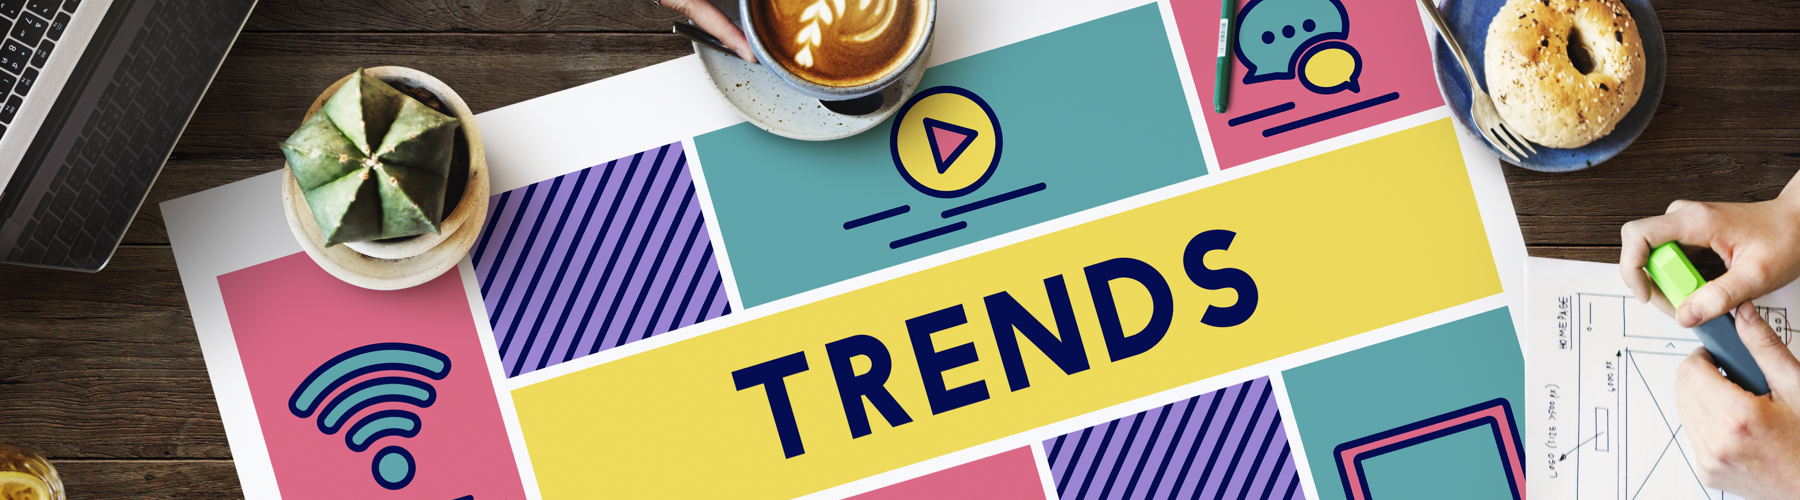 2019's Print and Design Trends